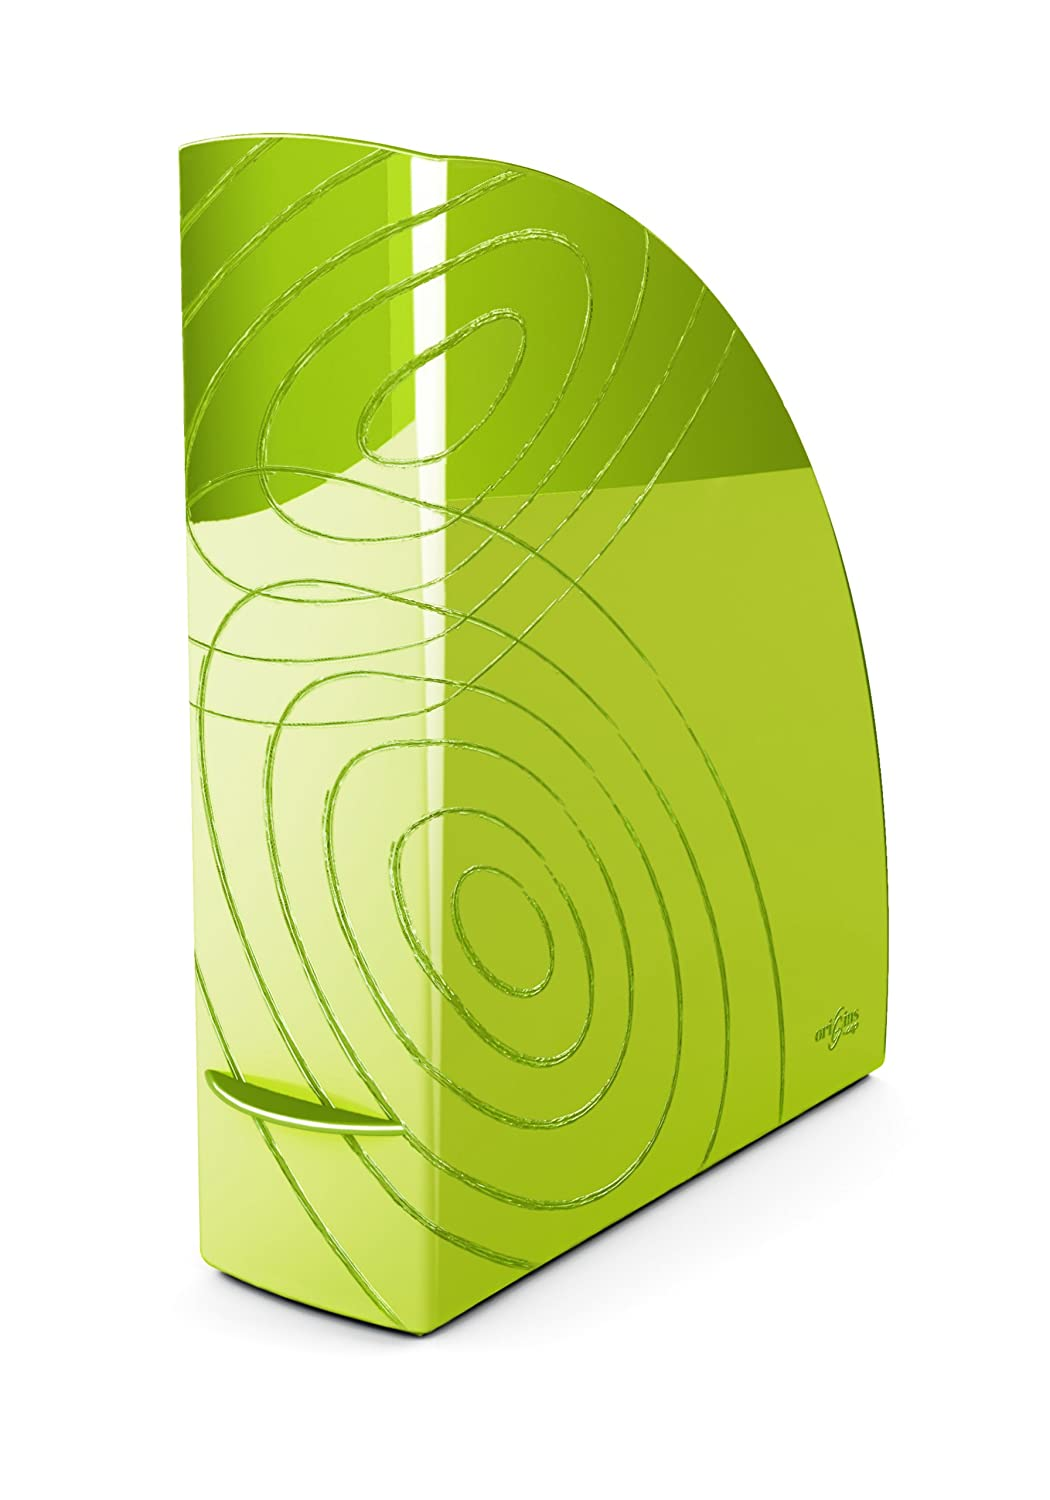 CEP Origins - Porta riviste, colore verde anice CEP OFFICE SOLUTIONS 1067000301